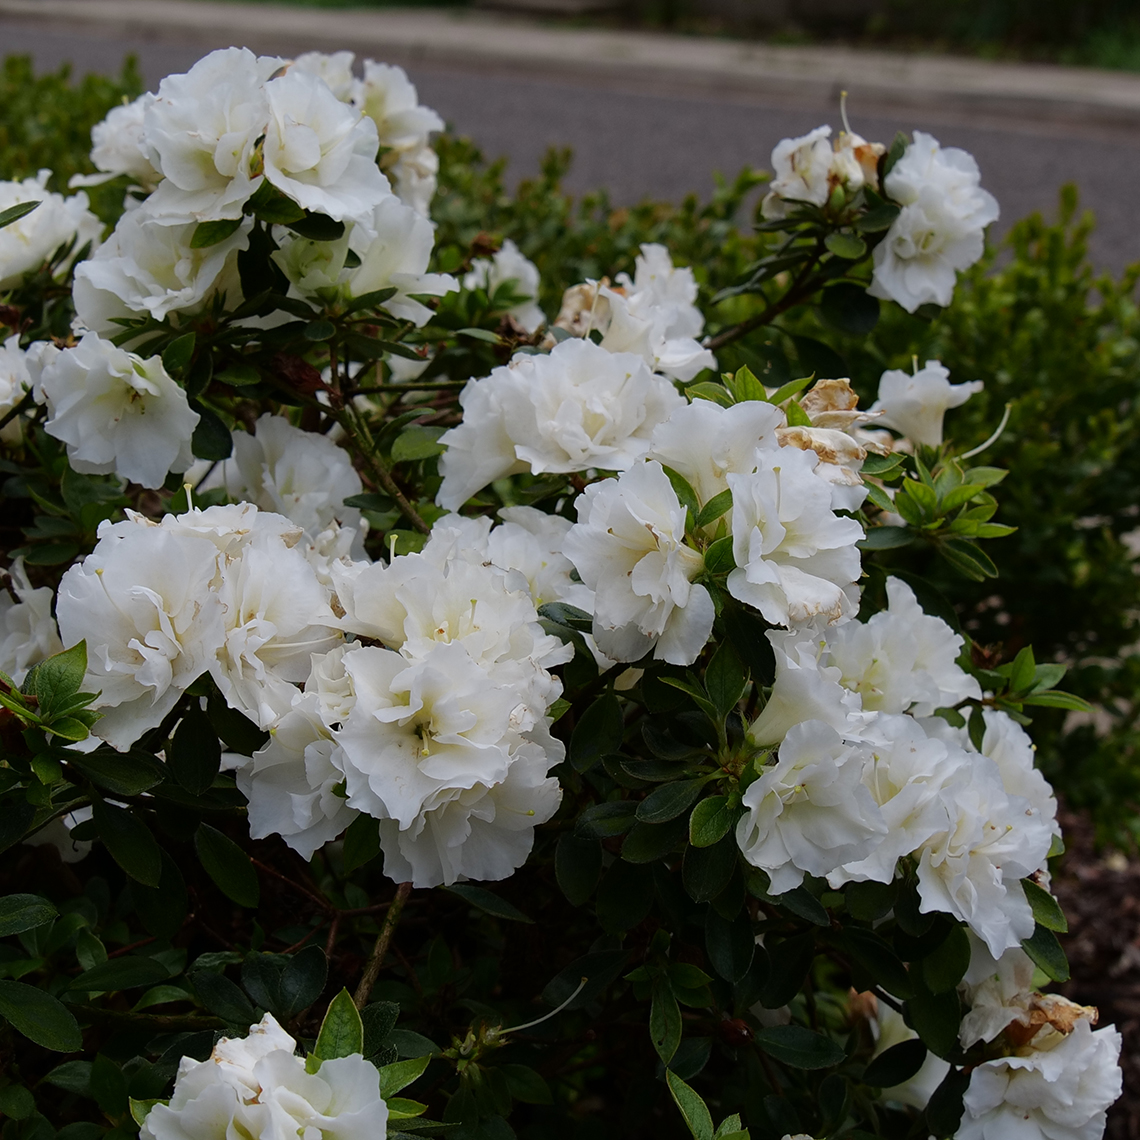 Perfecto Mundo Double White azalea is an innovative new reblooming azalea